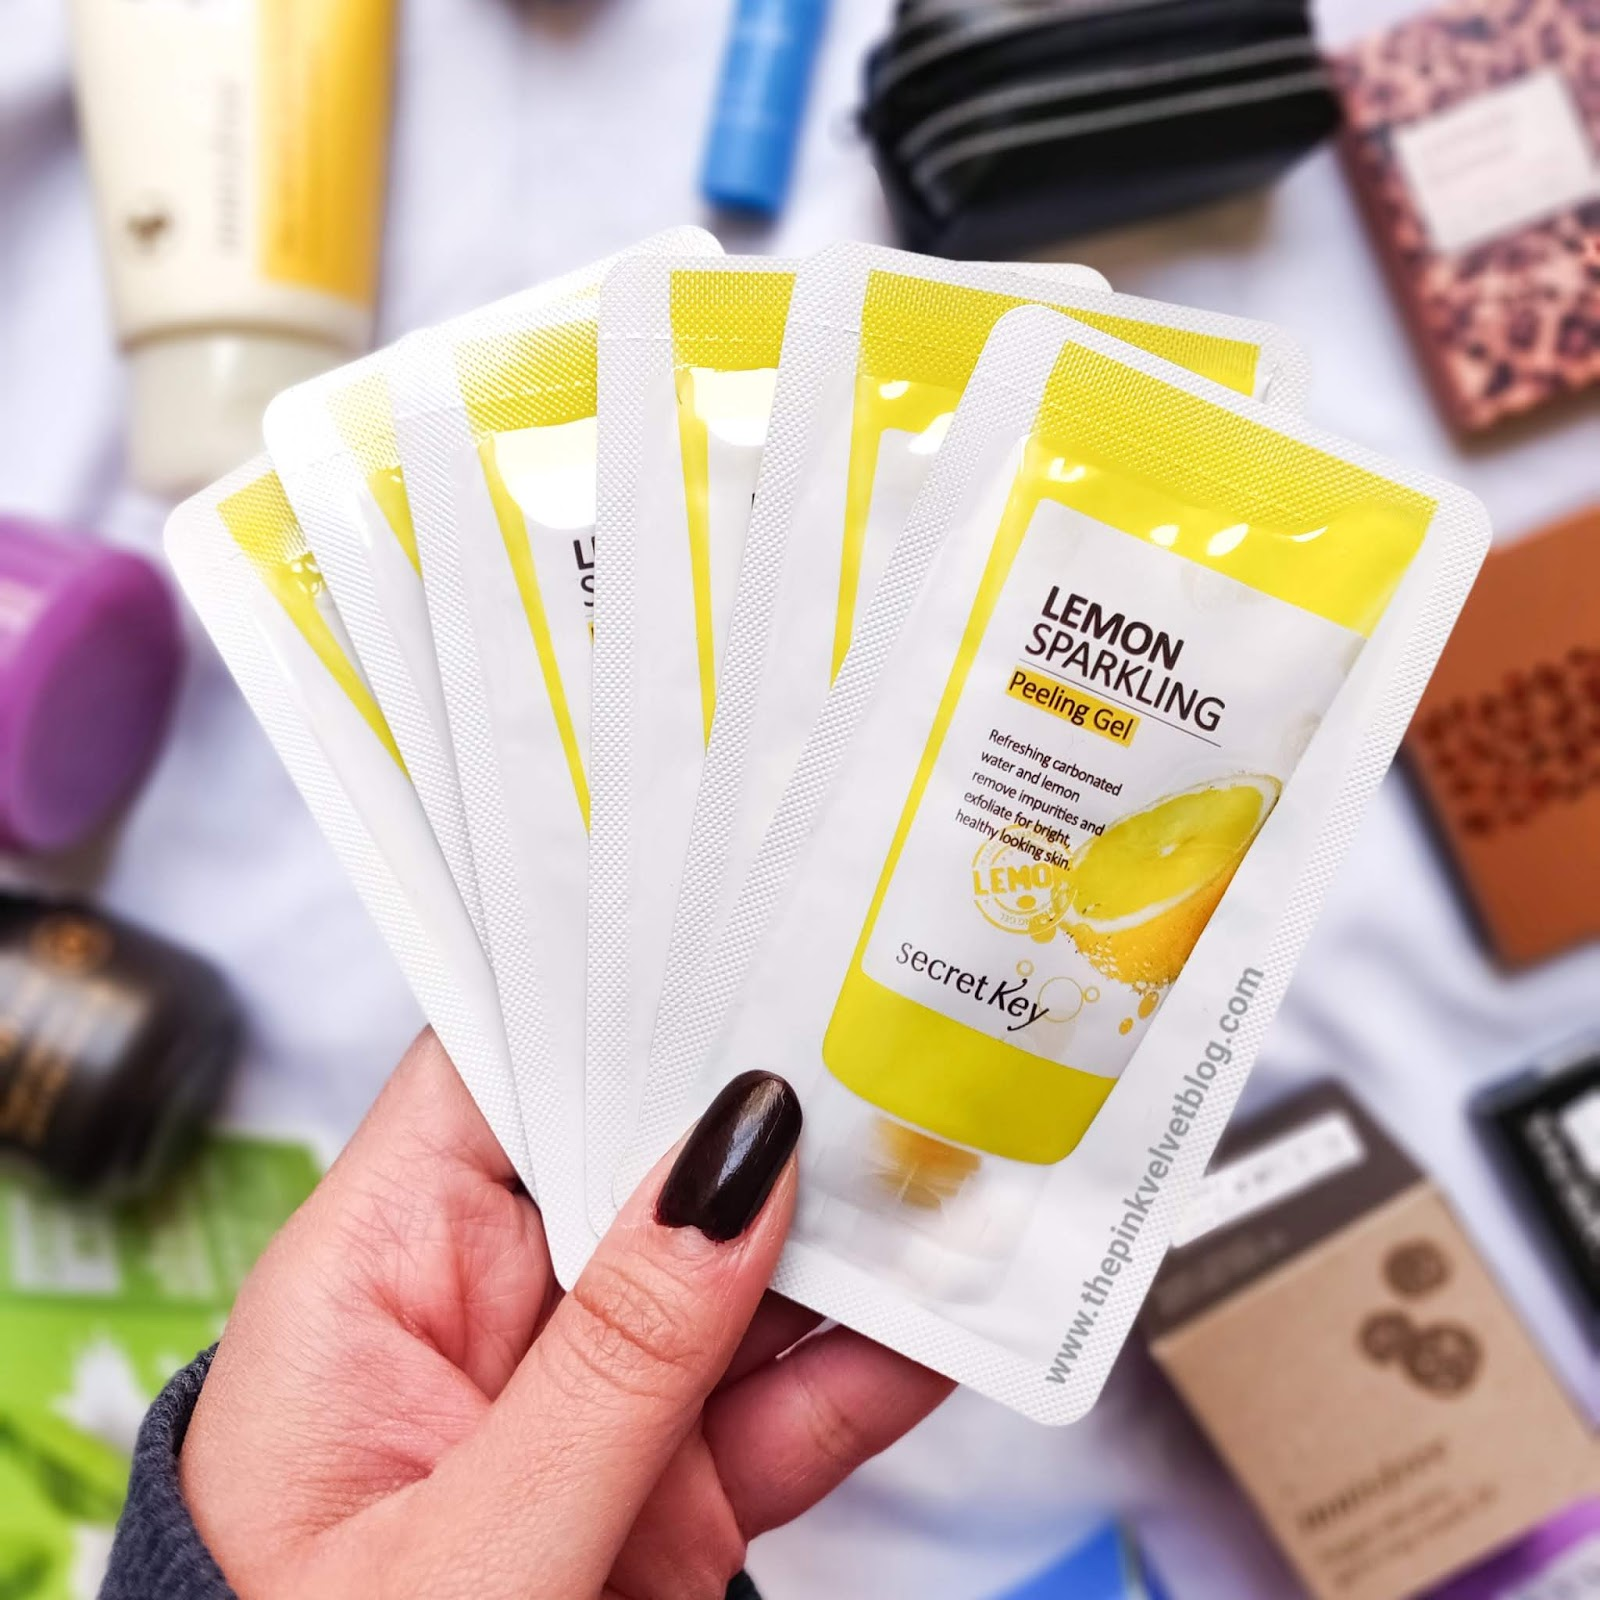 YesStyle Shopping Haul and Experience | YesStyle Shopping Haul and Experience | Korean Beauty Cosmetics from YesStyle - Secret Key - Lemon Sparkling Peeling Gel